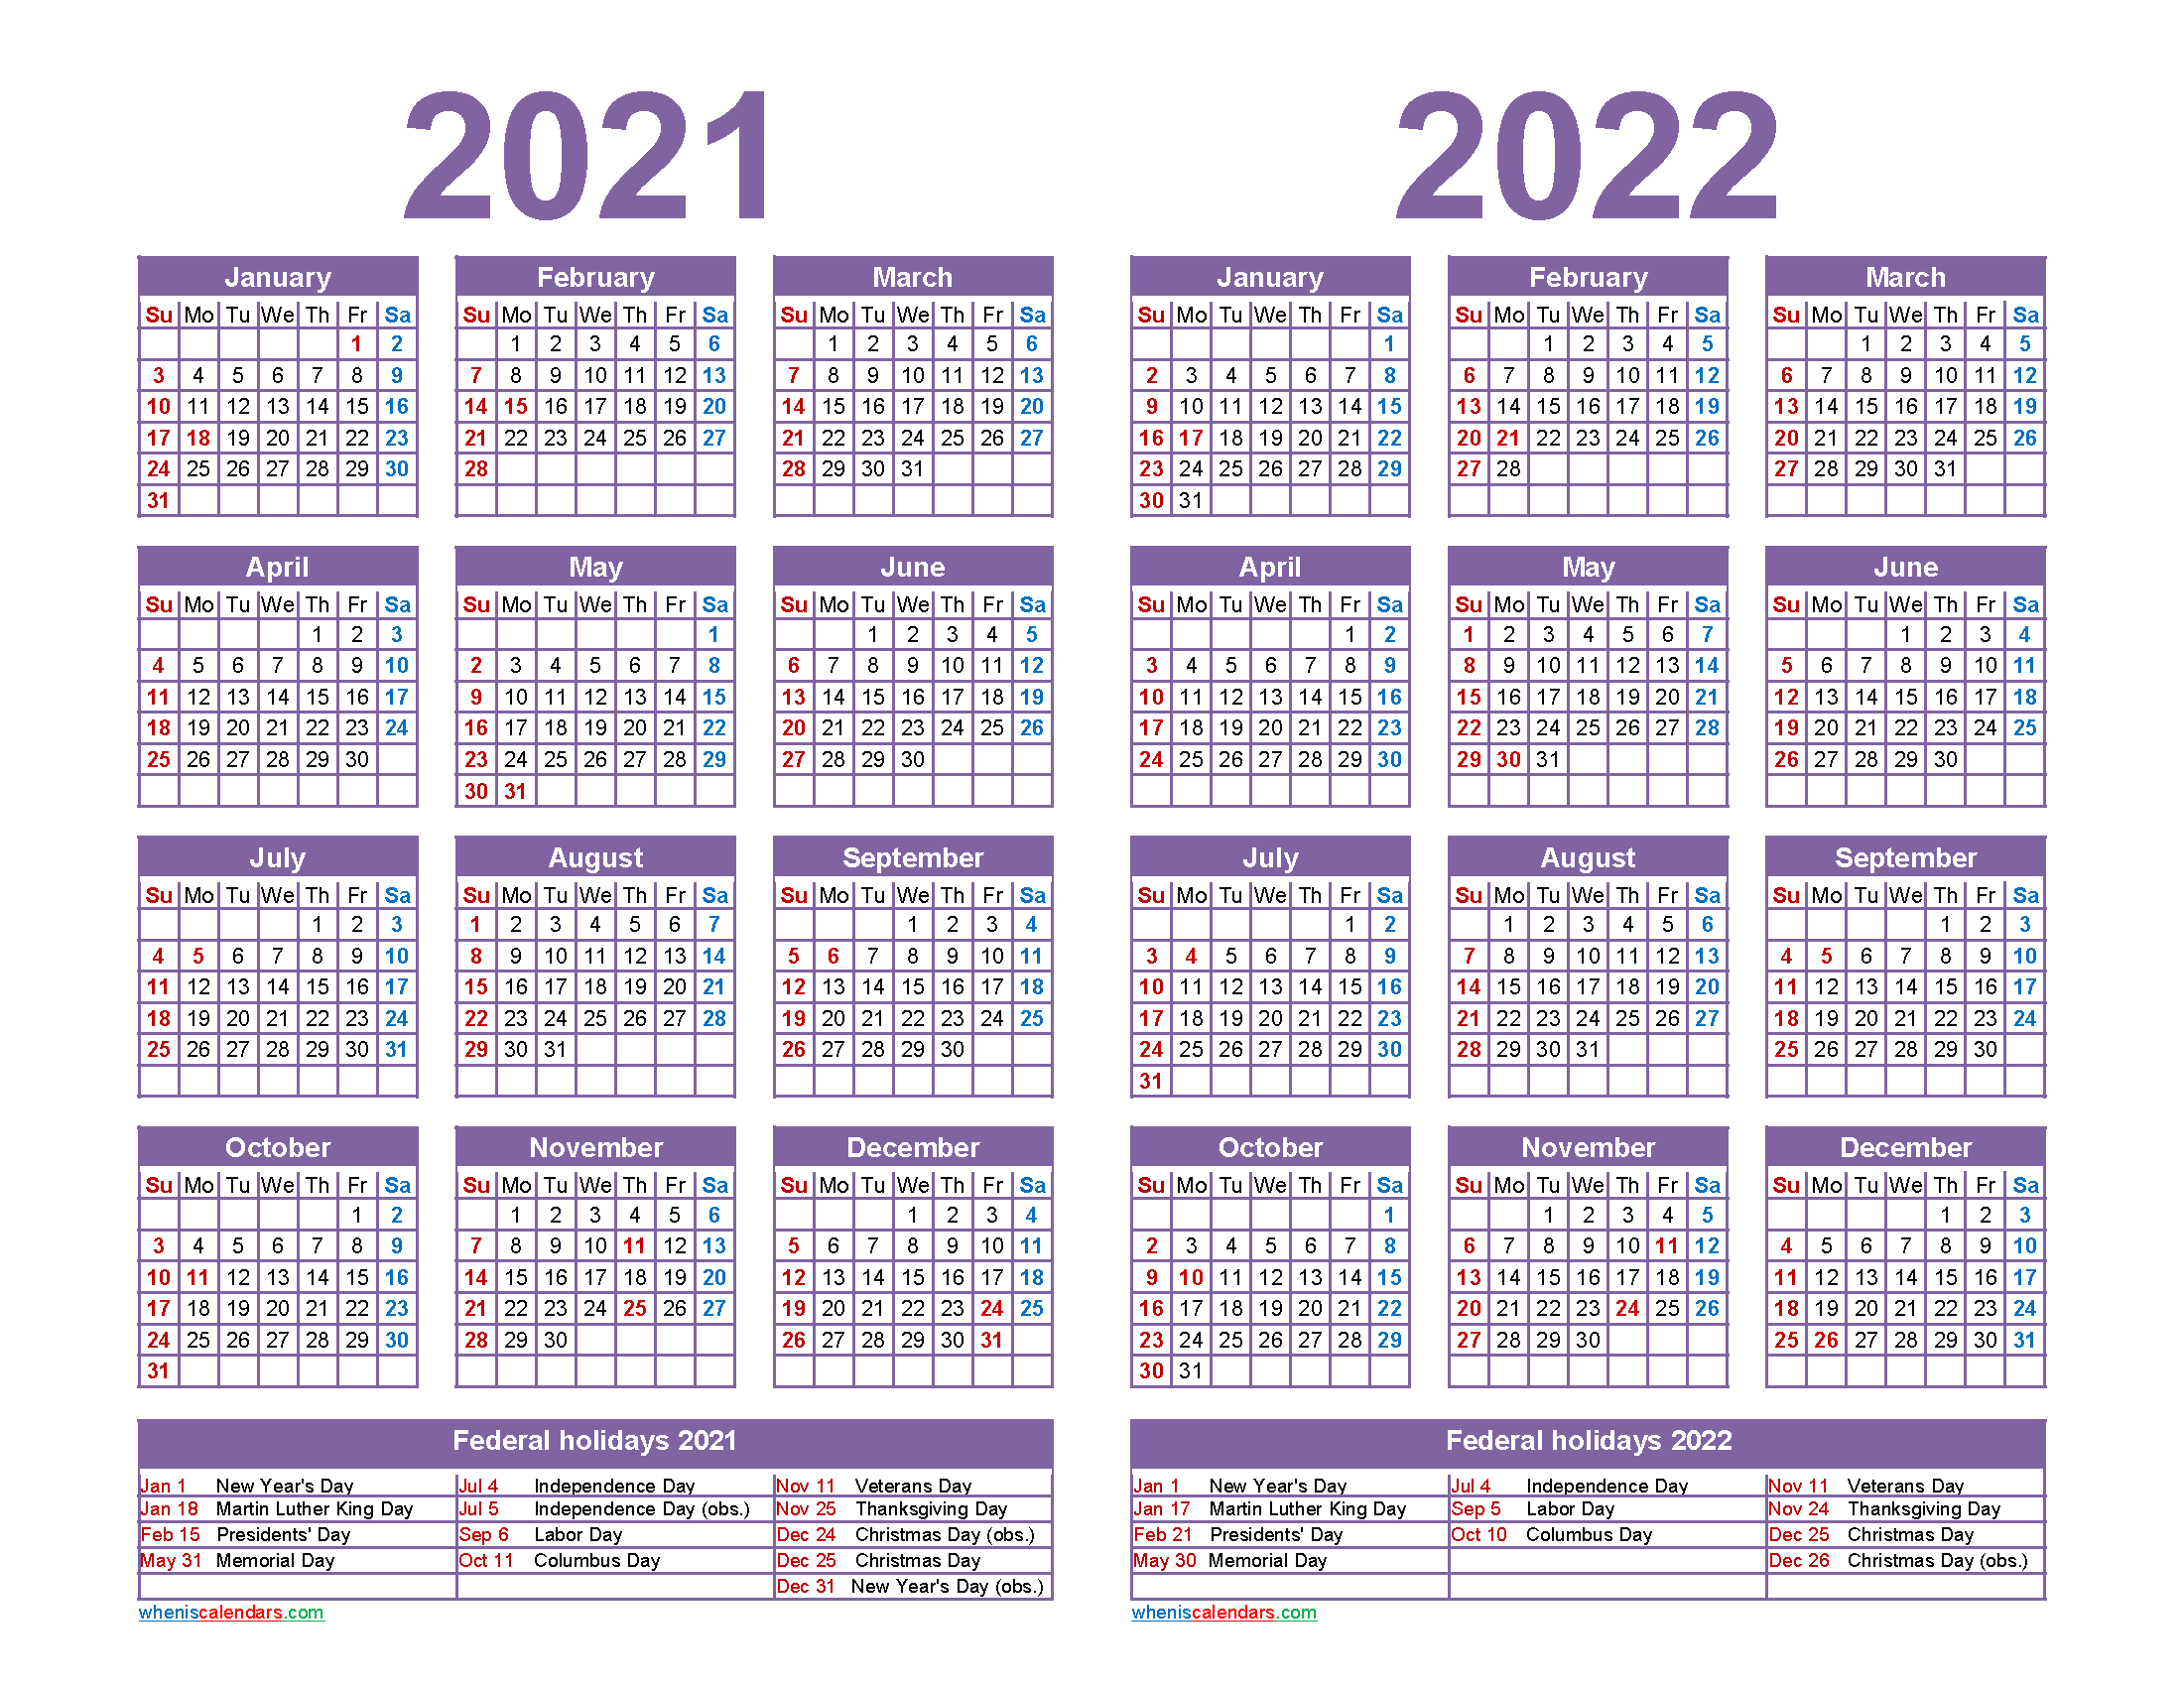 Free 2021 2022 Calendar Printable with Holidays | Free ...